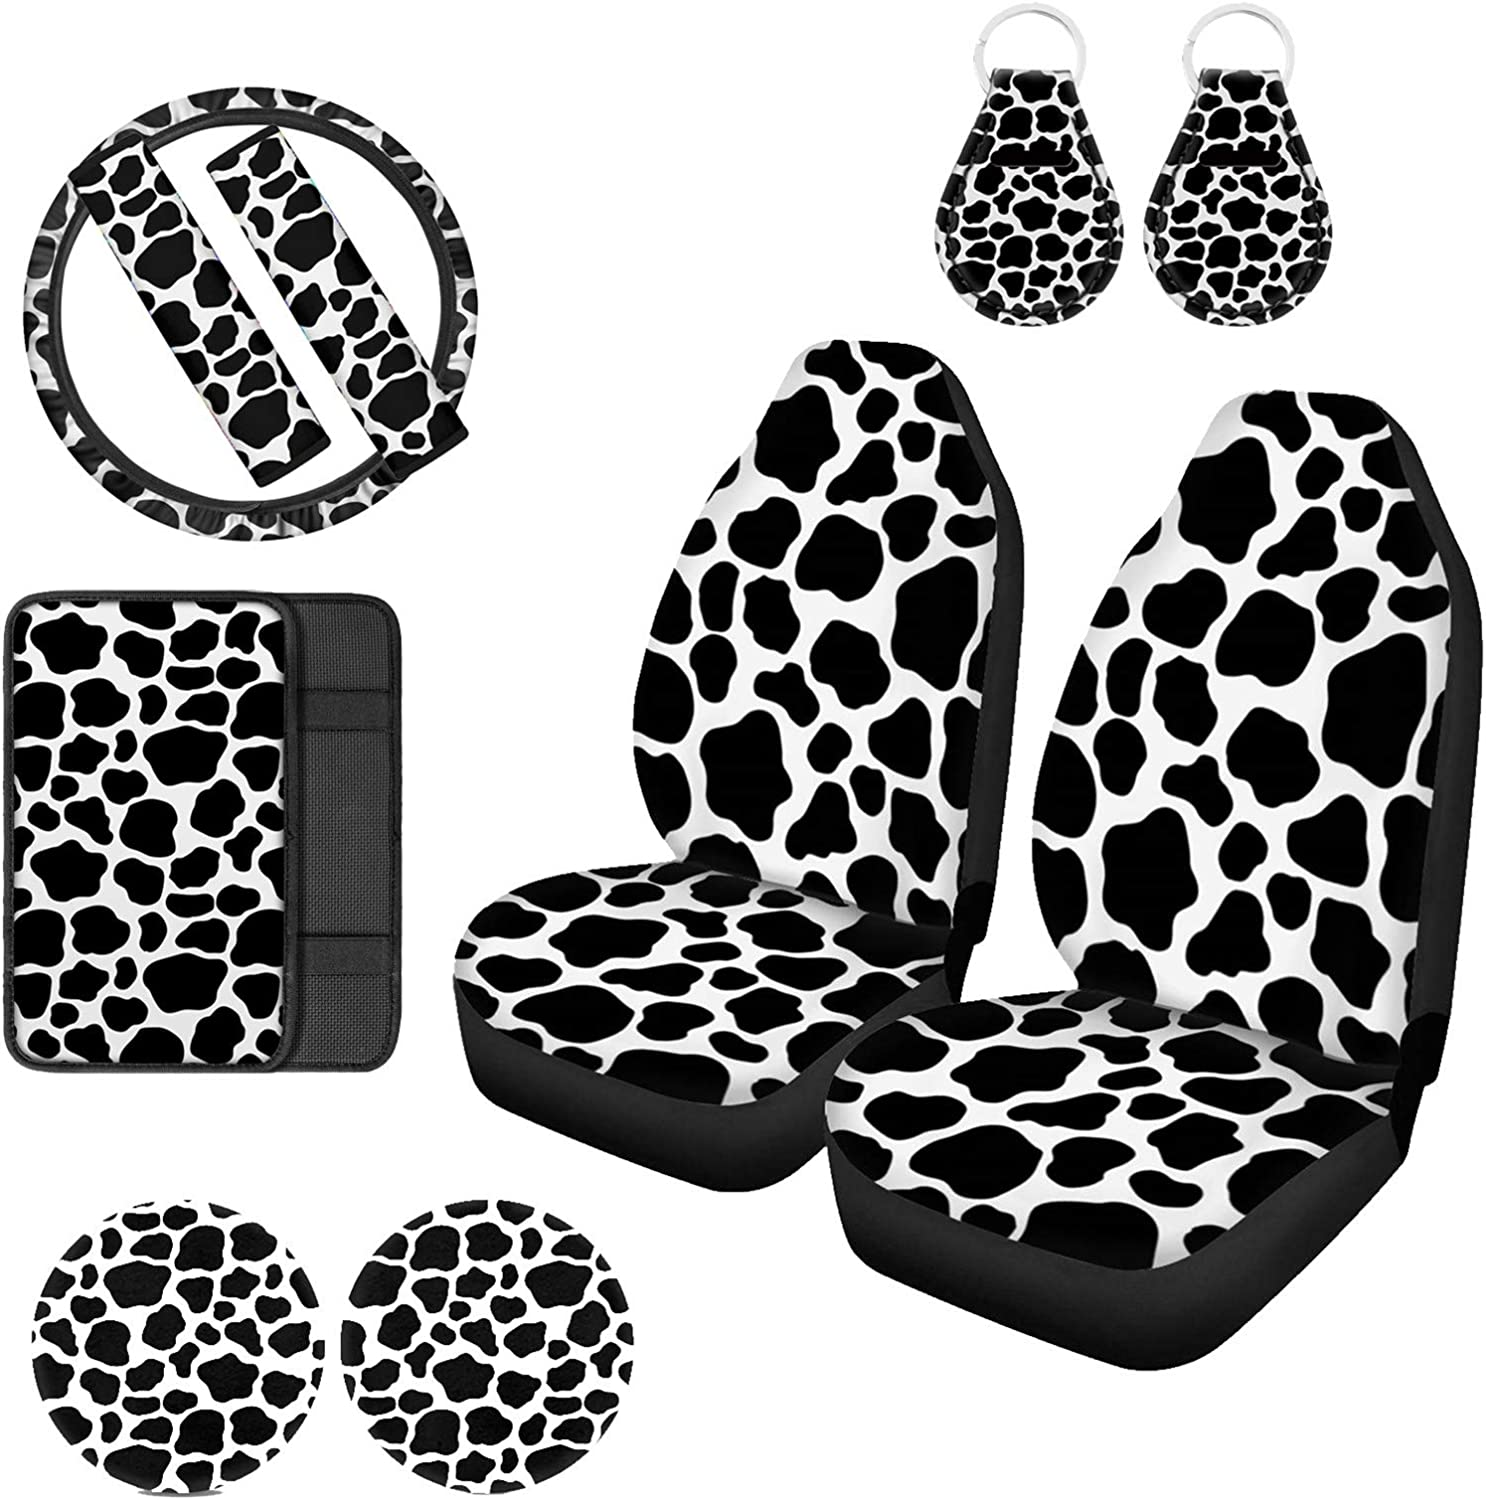 UZZUHI 2pcs Seat Cover 1 Wheel Steering Popular products Pa Discount is also underway Armrest